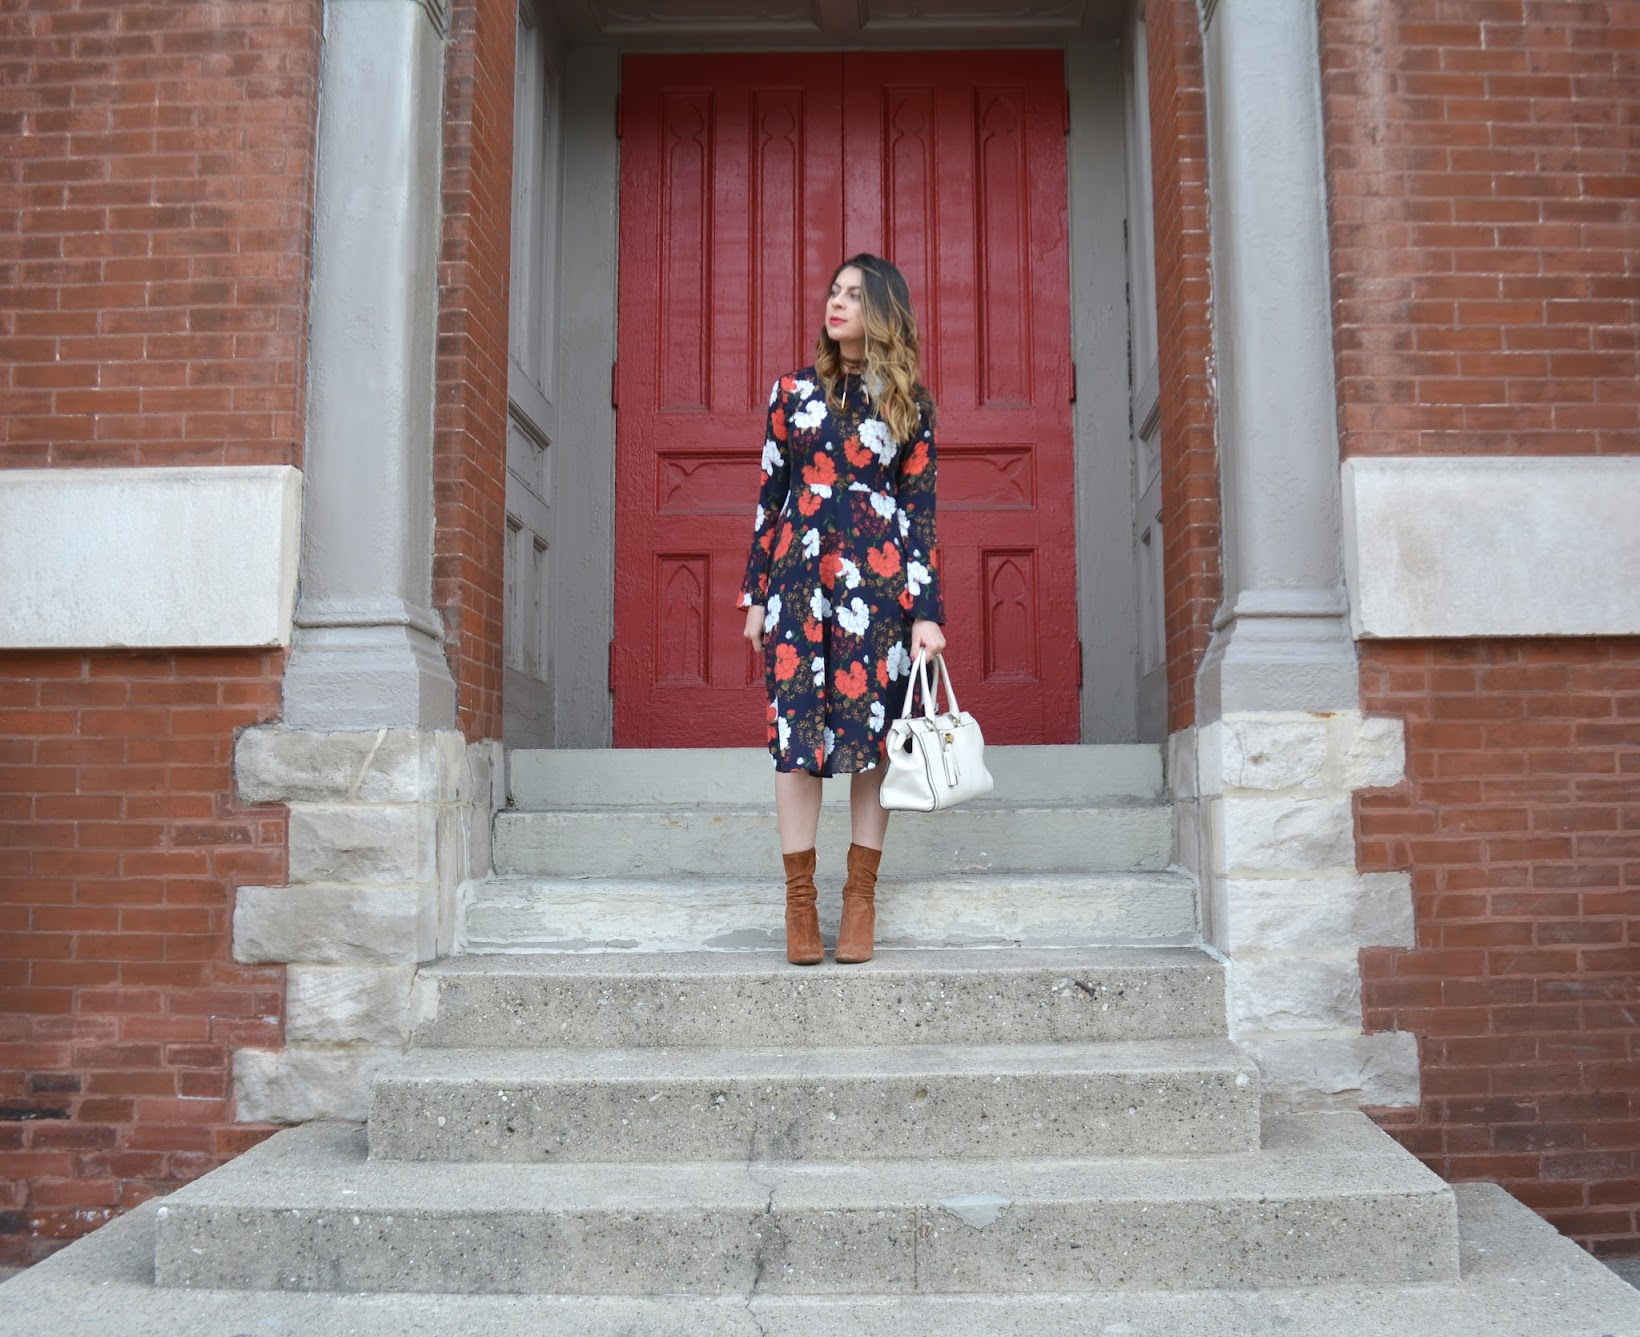 Red Floral-print Crew Neck A-line Long Sleeve Midi Dress, JIANSHAN, StyleWe Crew Neck A-line Long Sleeve Midi Dress, Red Floral-print Crew Neck A-line Long Sleeve Midi Dress, StyleWeRed Floral-print Crew Neck A-line Long Sleeve Midi Dress, StyleWe foral midi dress, vestido midi de StyleWe, vestido midi floral, winter florals, dark florals, estampado floral para el invierno, retro winter florals, StyleWe, Desiree Velasquez, Fashionlingual, Chicago fashion blogger, Chicago style blogger, Chicago streetstyle, Chicago blogger, bloguera de moda de Chicago, bloguera de moda, bloguera de moda latina, Latina fashion blogger, Zara suede midi boots, suede midi boots, brown suede midi boots, botines de ante de Zara, botines de Zara, botines midi, Coach Legacy satchel, white Legacy satchel from Coach, winter style, winter fashion, estilo invierno, moda del invierno, suede choker, Zaful suede choker, Zaful choker, balayage by MixedCo Salon,